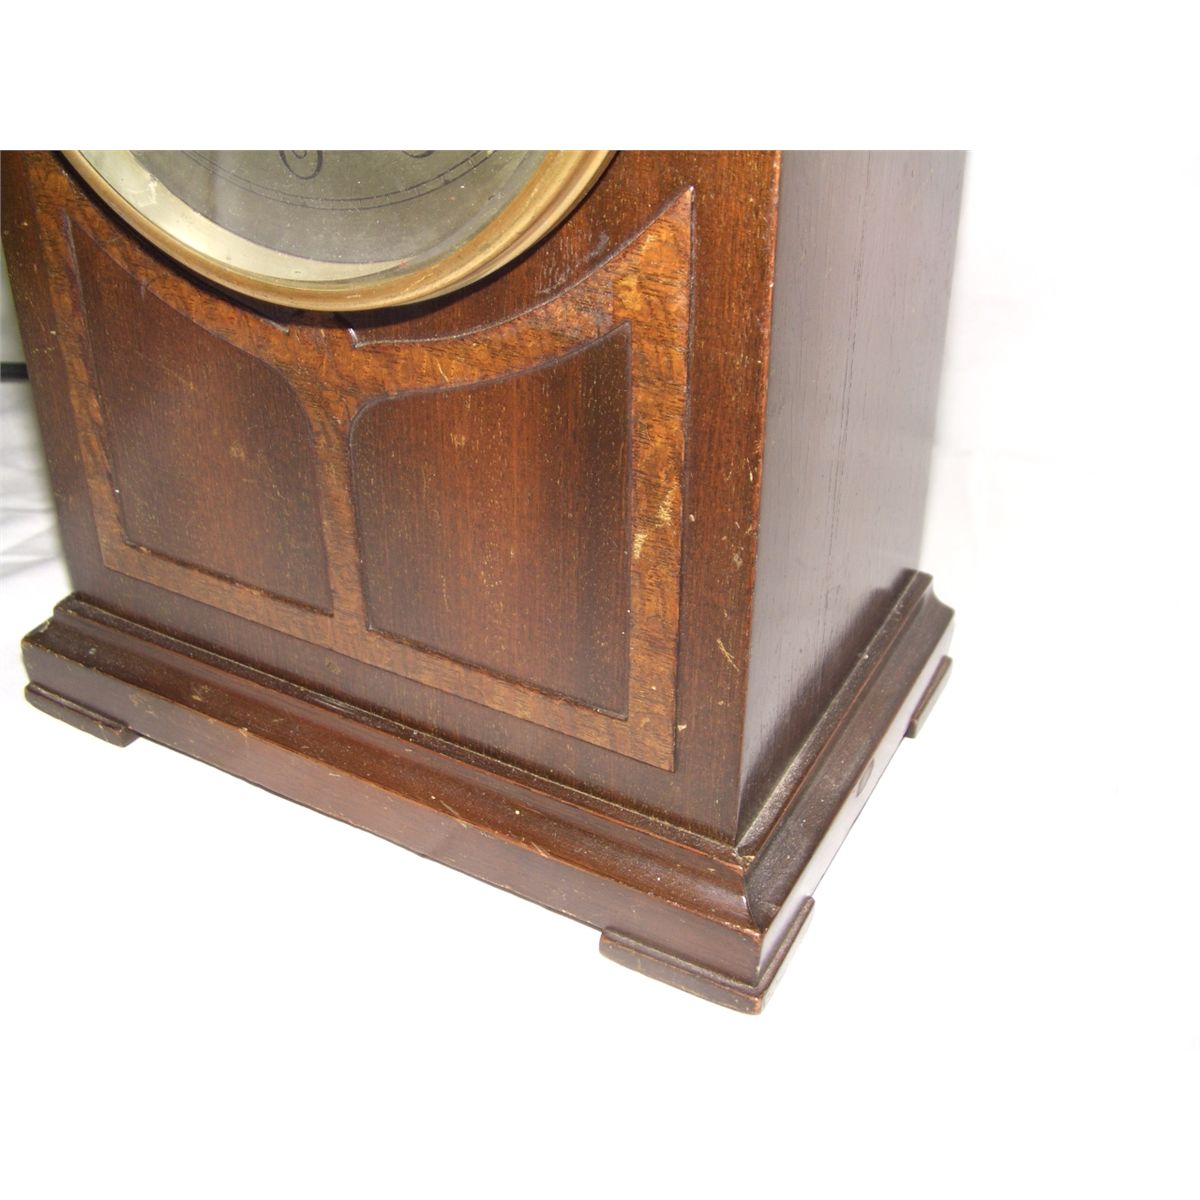 Arts and crafts mantle clock - Arts And Crafts Mantle Clock 30